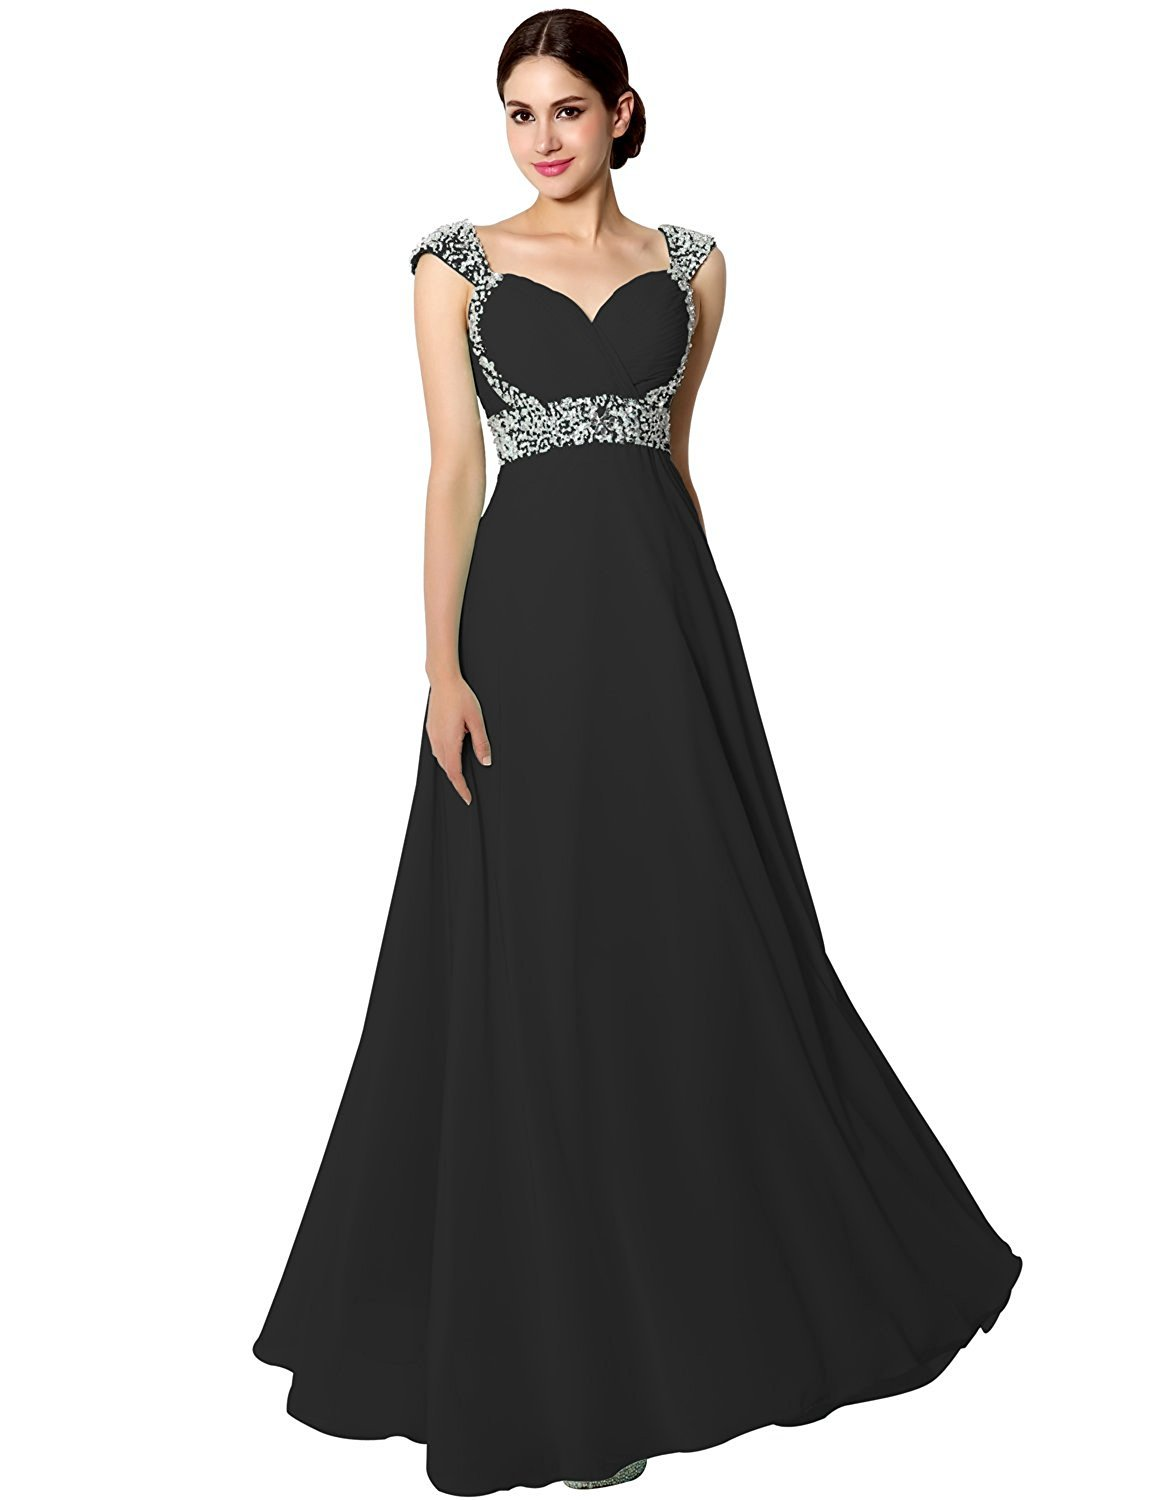 Plus Size 26 Prom Dresses: Amazon.com